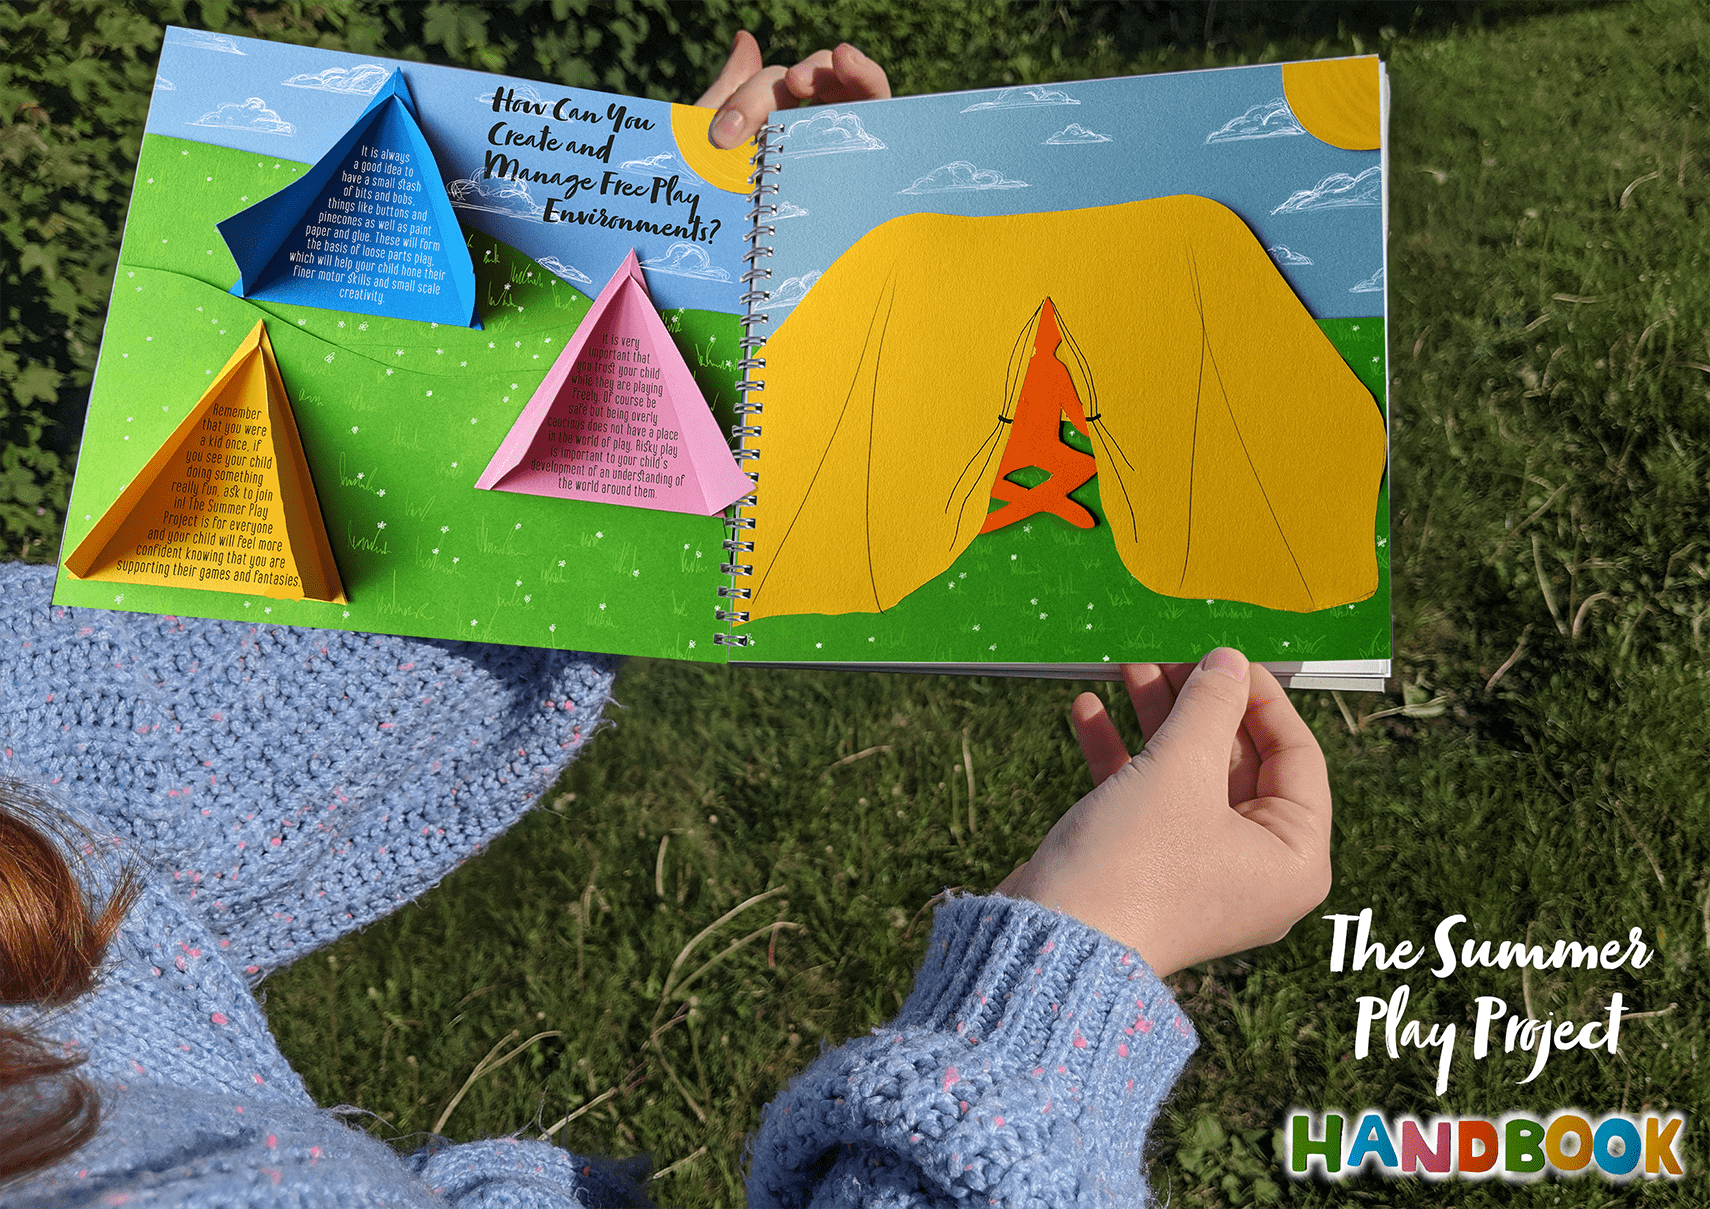 Someone holding a brightly coloured book - the first section of The Handbook contains information on free play, laid out like a children's lift-the-flap book.